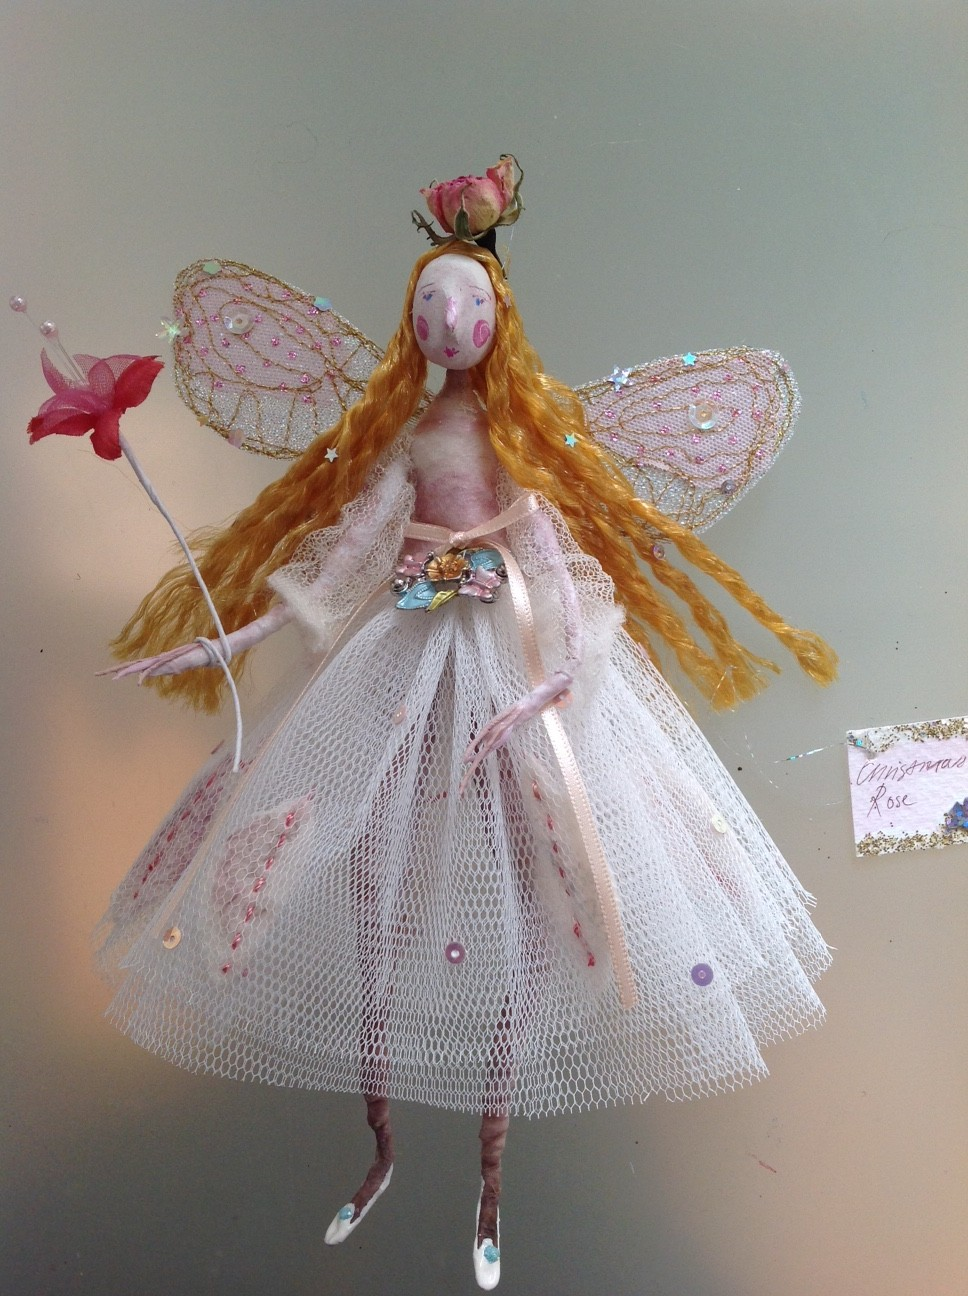 CHRISTMAS ROSE A 20 cm high fairy with a paper clay painted face. She is wearing a felted top with fine tulle sleeves , a stiff net skirt embellished with felted leaves and sequins, with an enamelled jewel at her waist. Her wings are embroidered and she has a dried rosebud on her head. She comes in an organza bag with dried roses and petals in it . £48 plus £3.50 p&p